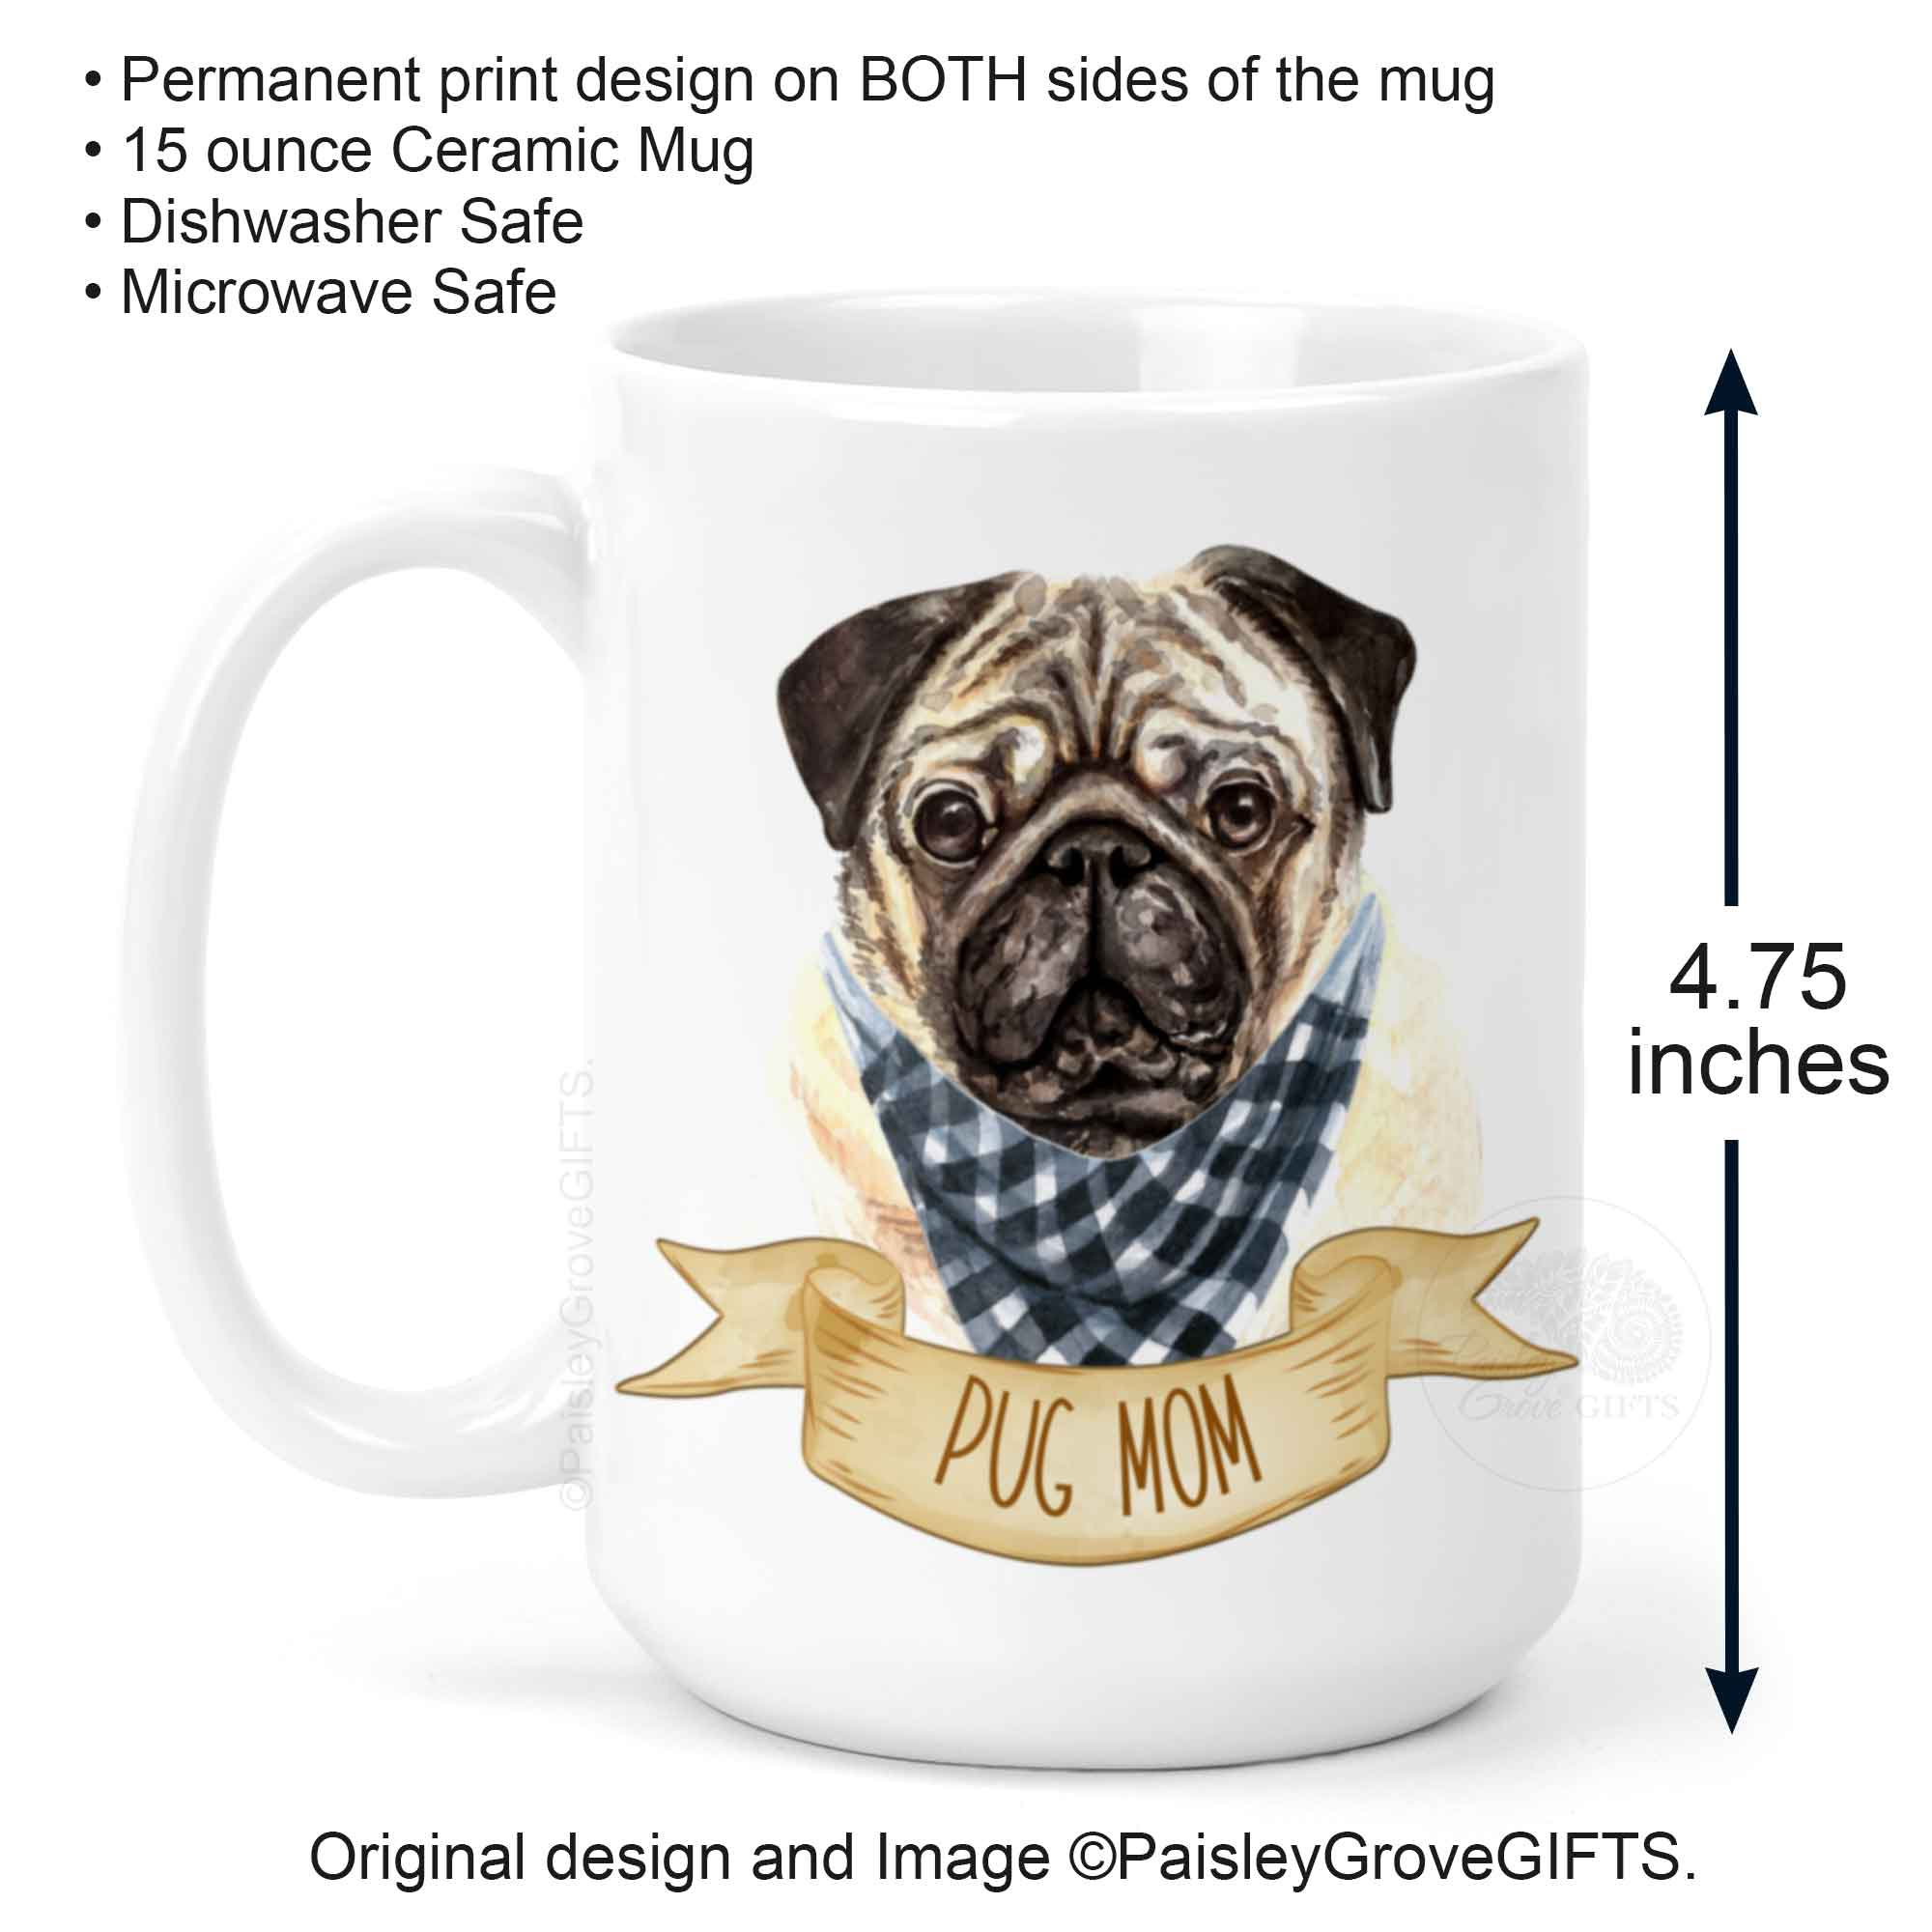 P009c1-Copyright PaisleyGroveGIFTS Pug Mom Gift Coffee Mug for Left Handed Pug Moms